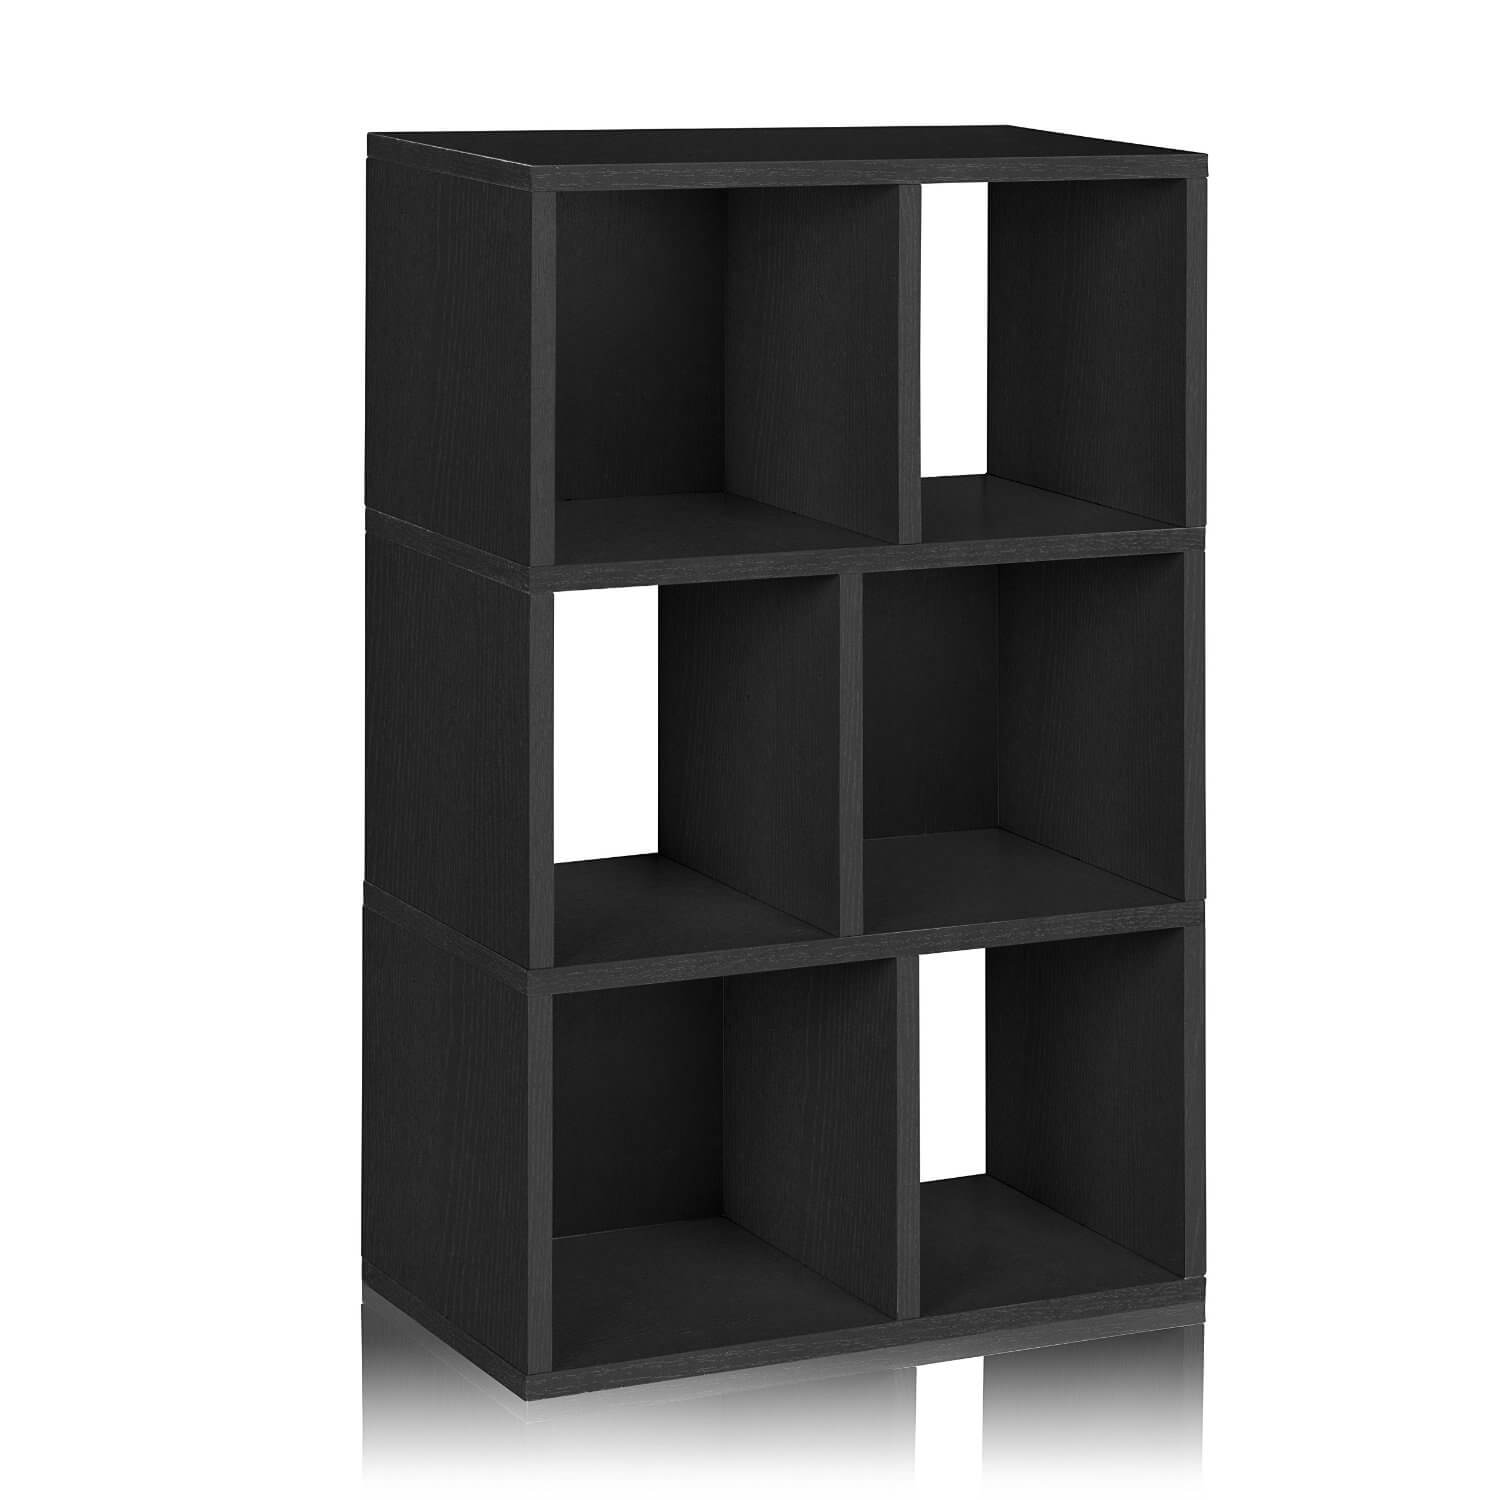 This is a simple checkered style 6-cube shelving unit standing 36.8 inches tall and is 22.8 inches wide.